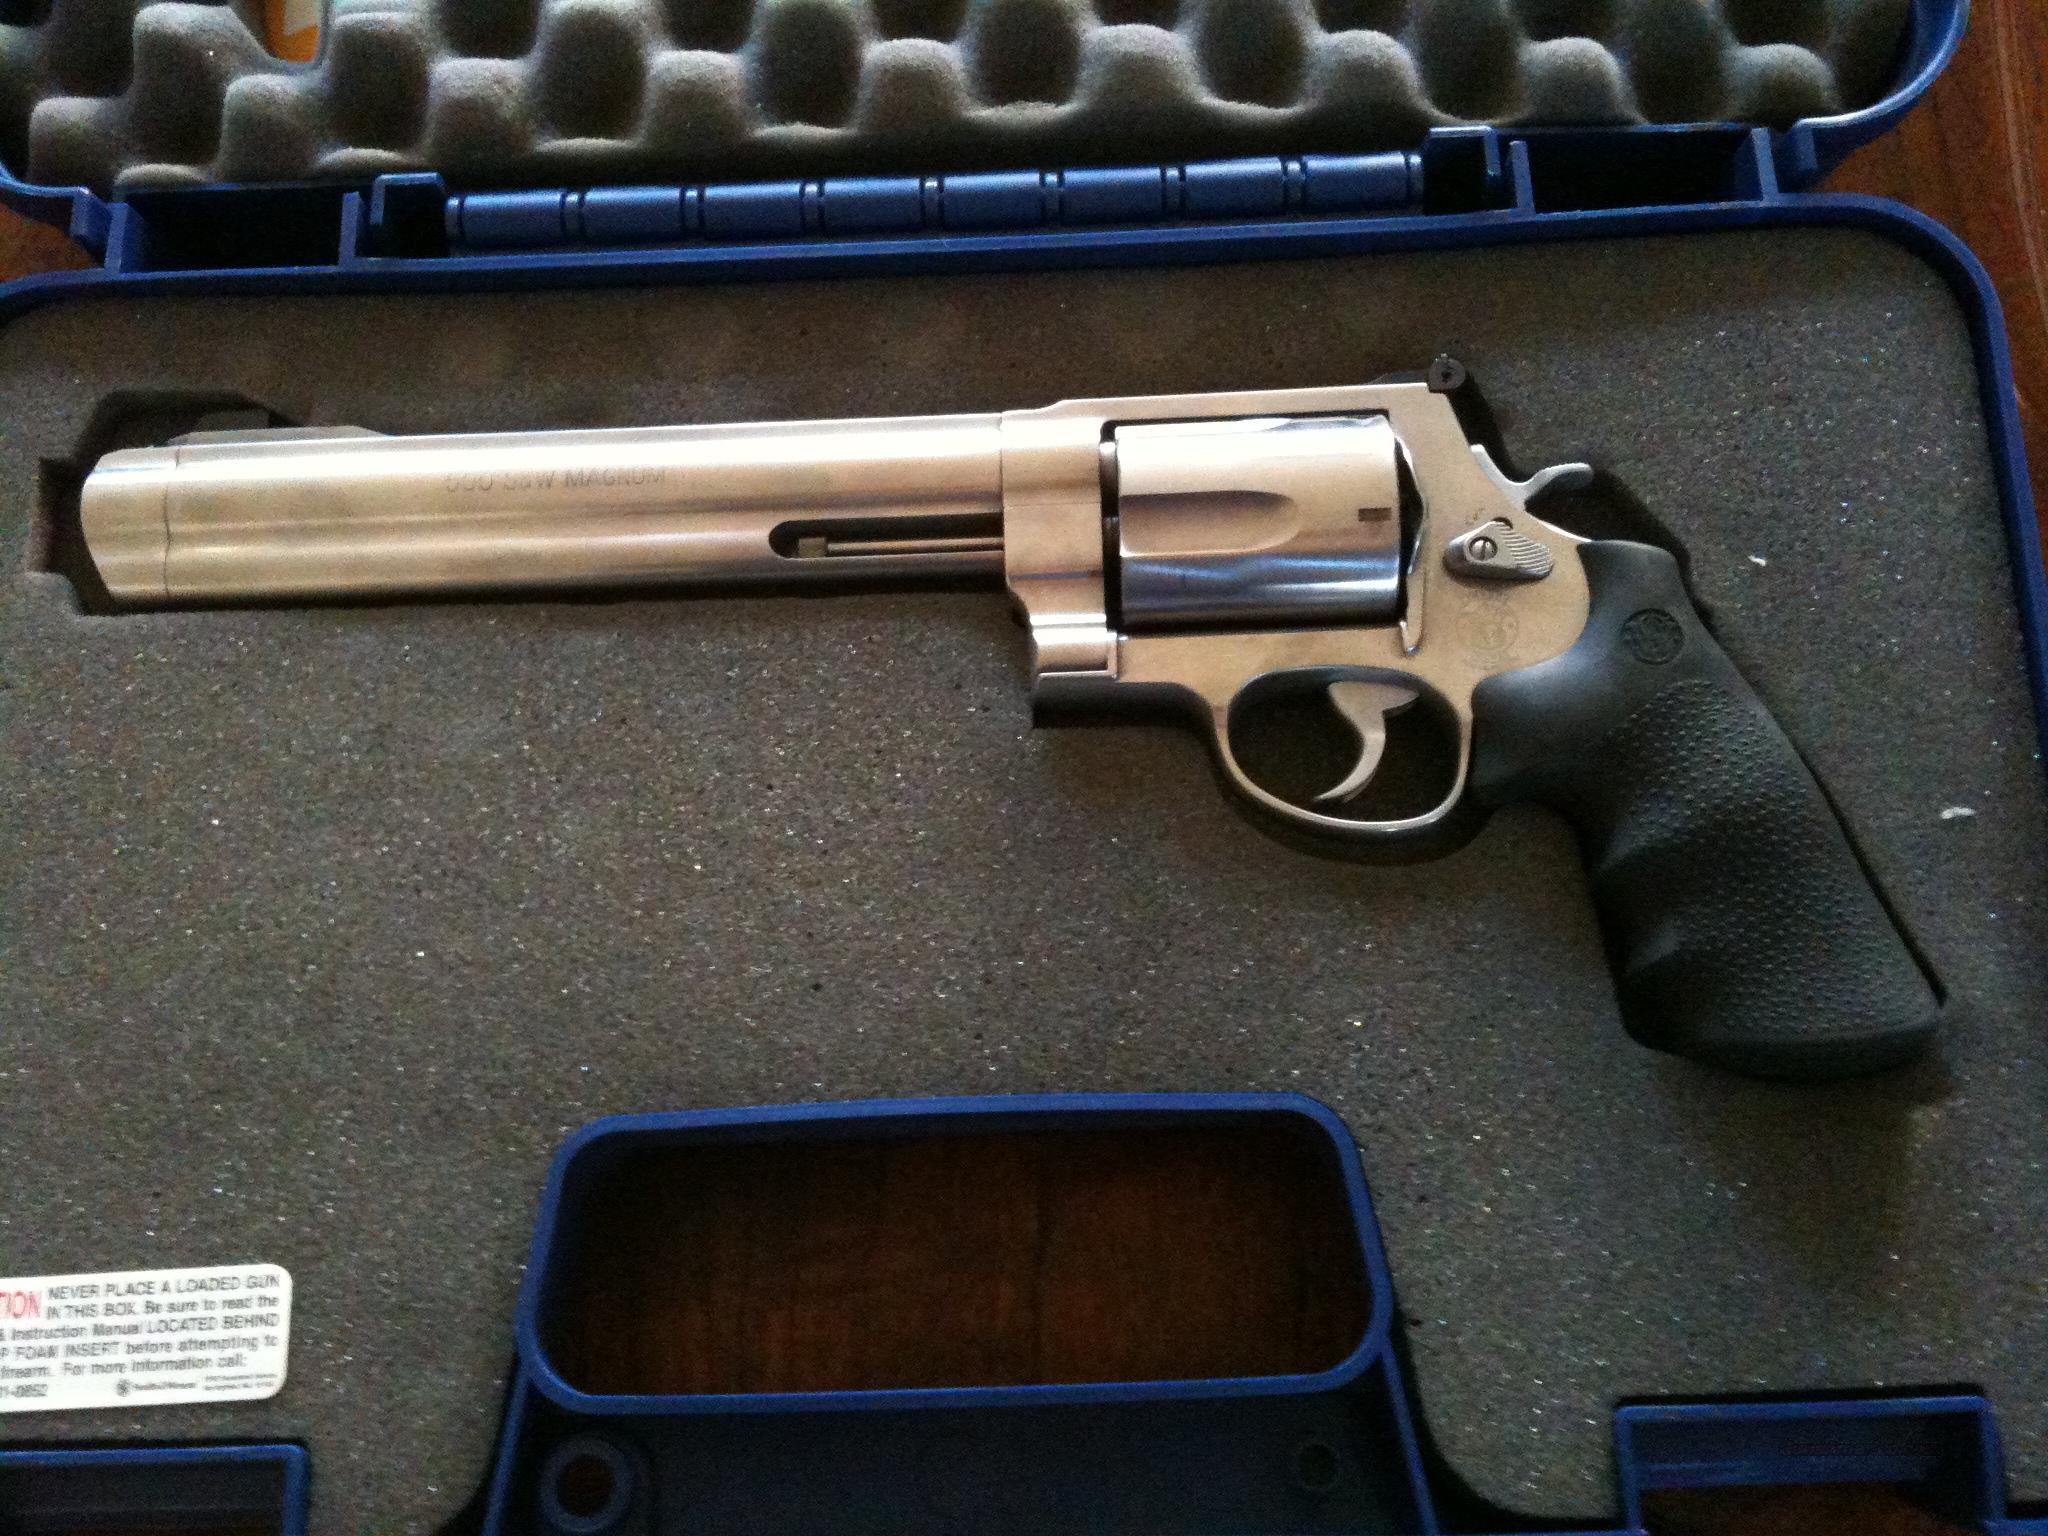 Smith & Wesson 500 Magnum 8 3/8 barrel  Guns > Pistols > Smith & Wesson Revolvers > Full Frame Revolver